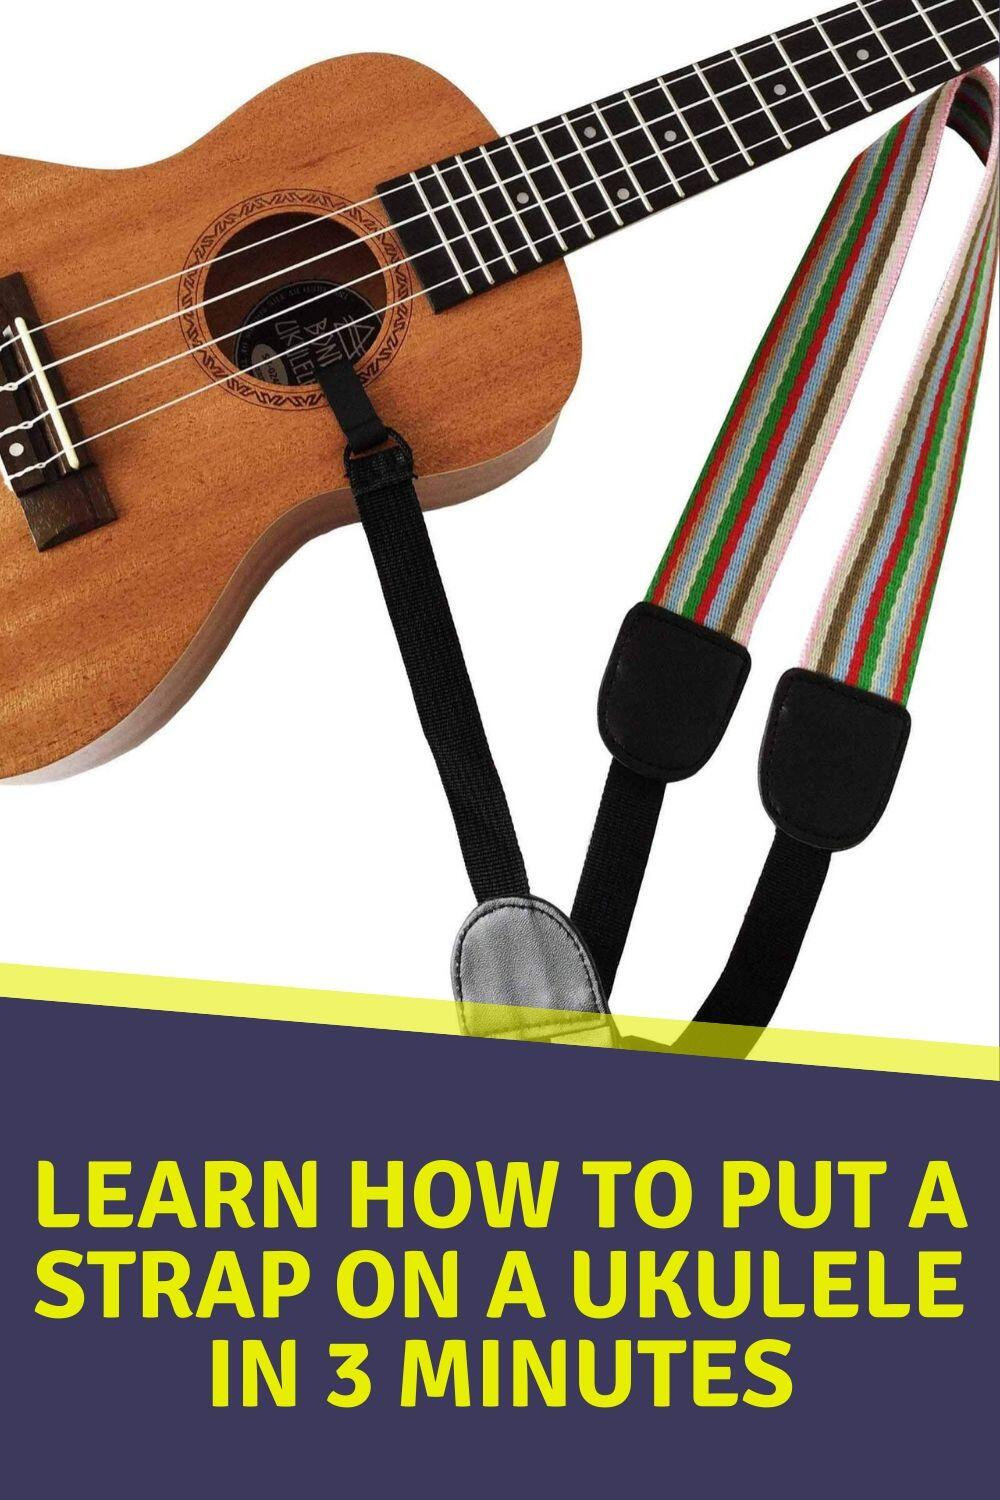 Learn How to Put a Strap on a Ukulele in 3 minutes